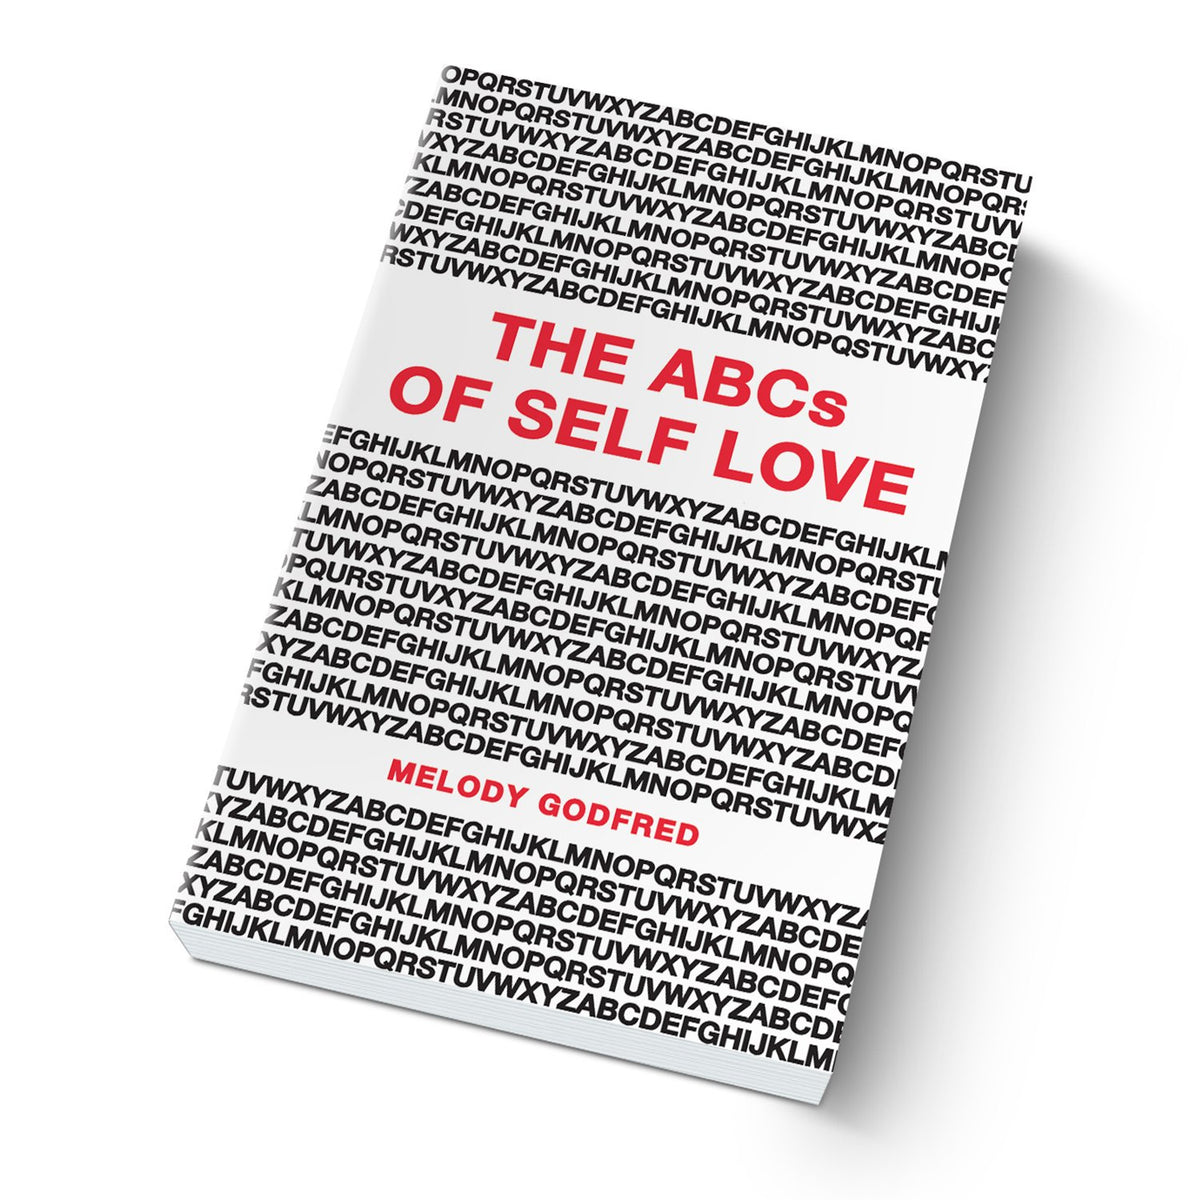 The ABCs of Self Love (Promo)